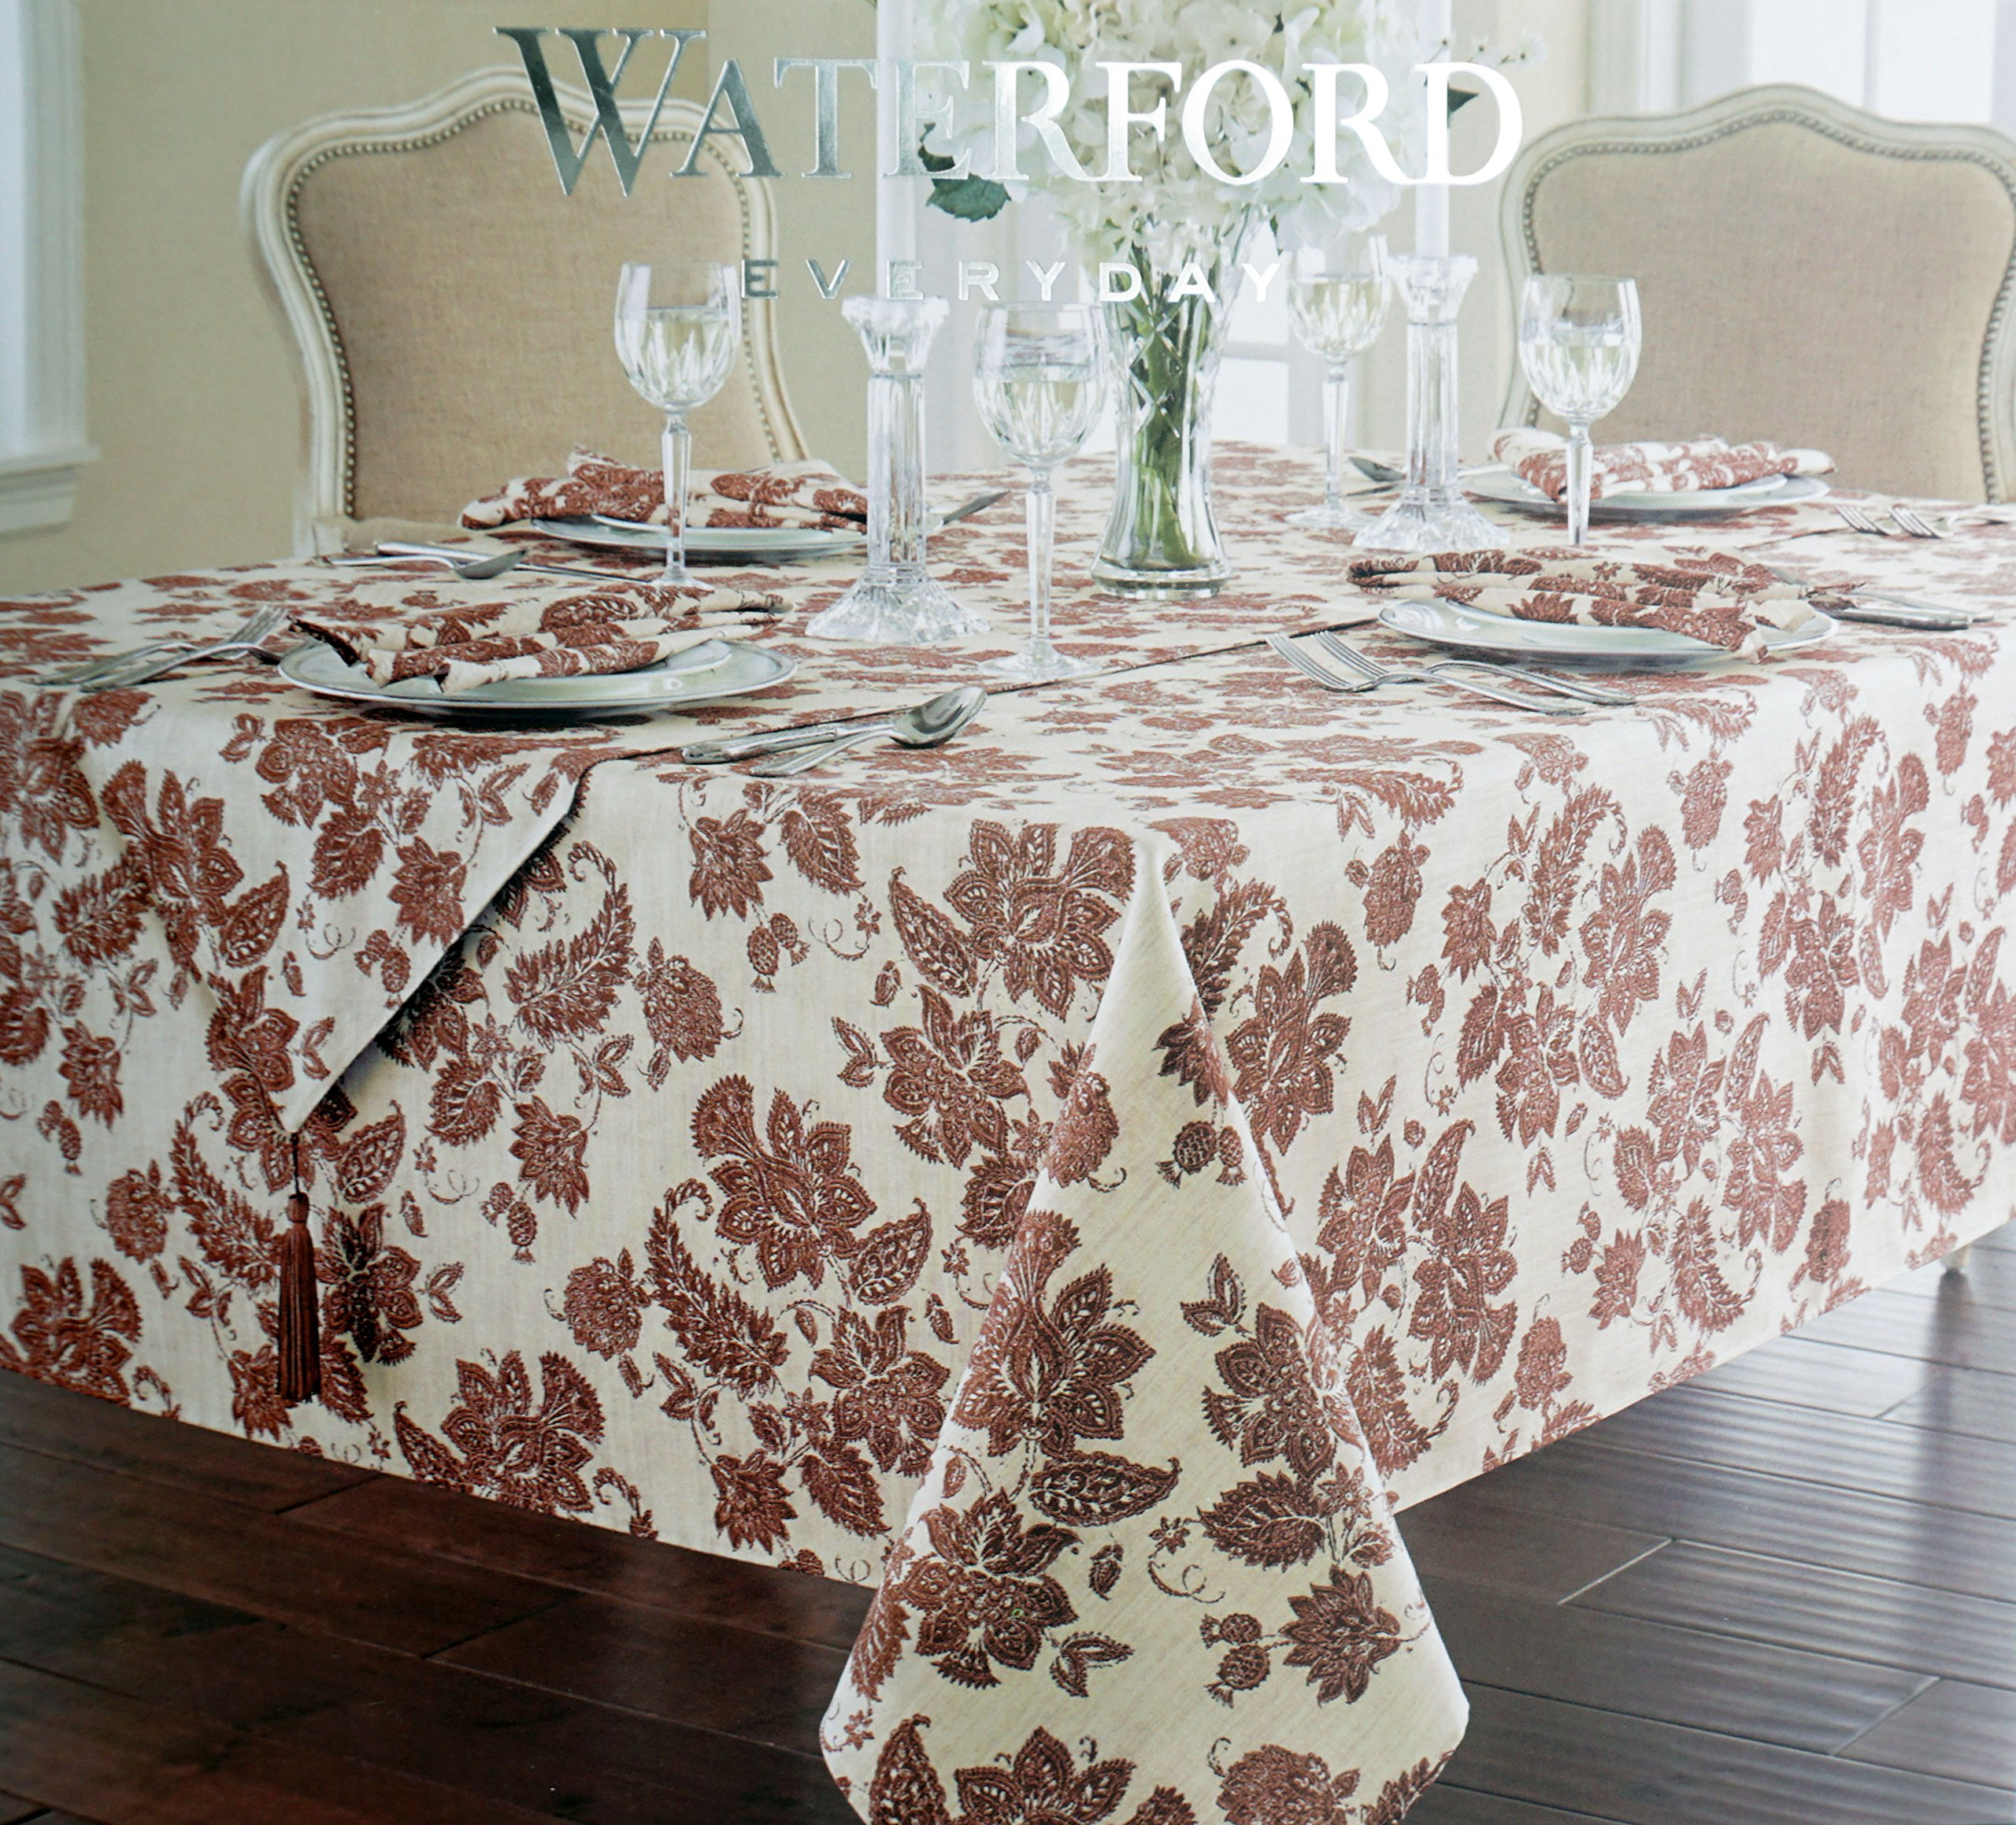 Waterford Everyday Easy Care Stain Resistant Cotton Fabric Tablecloth Rust Red Floral Pattern on Cream -- Regan Cinnamon, 60 Inches by 84 Inches by Waterford Linens